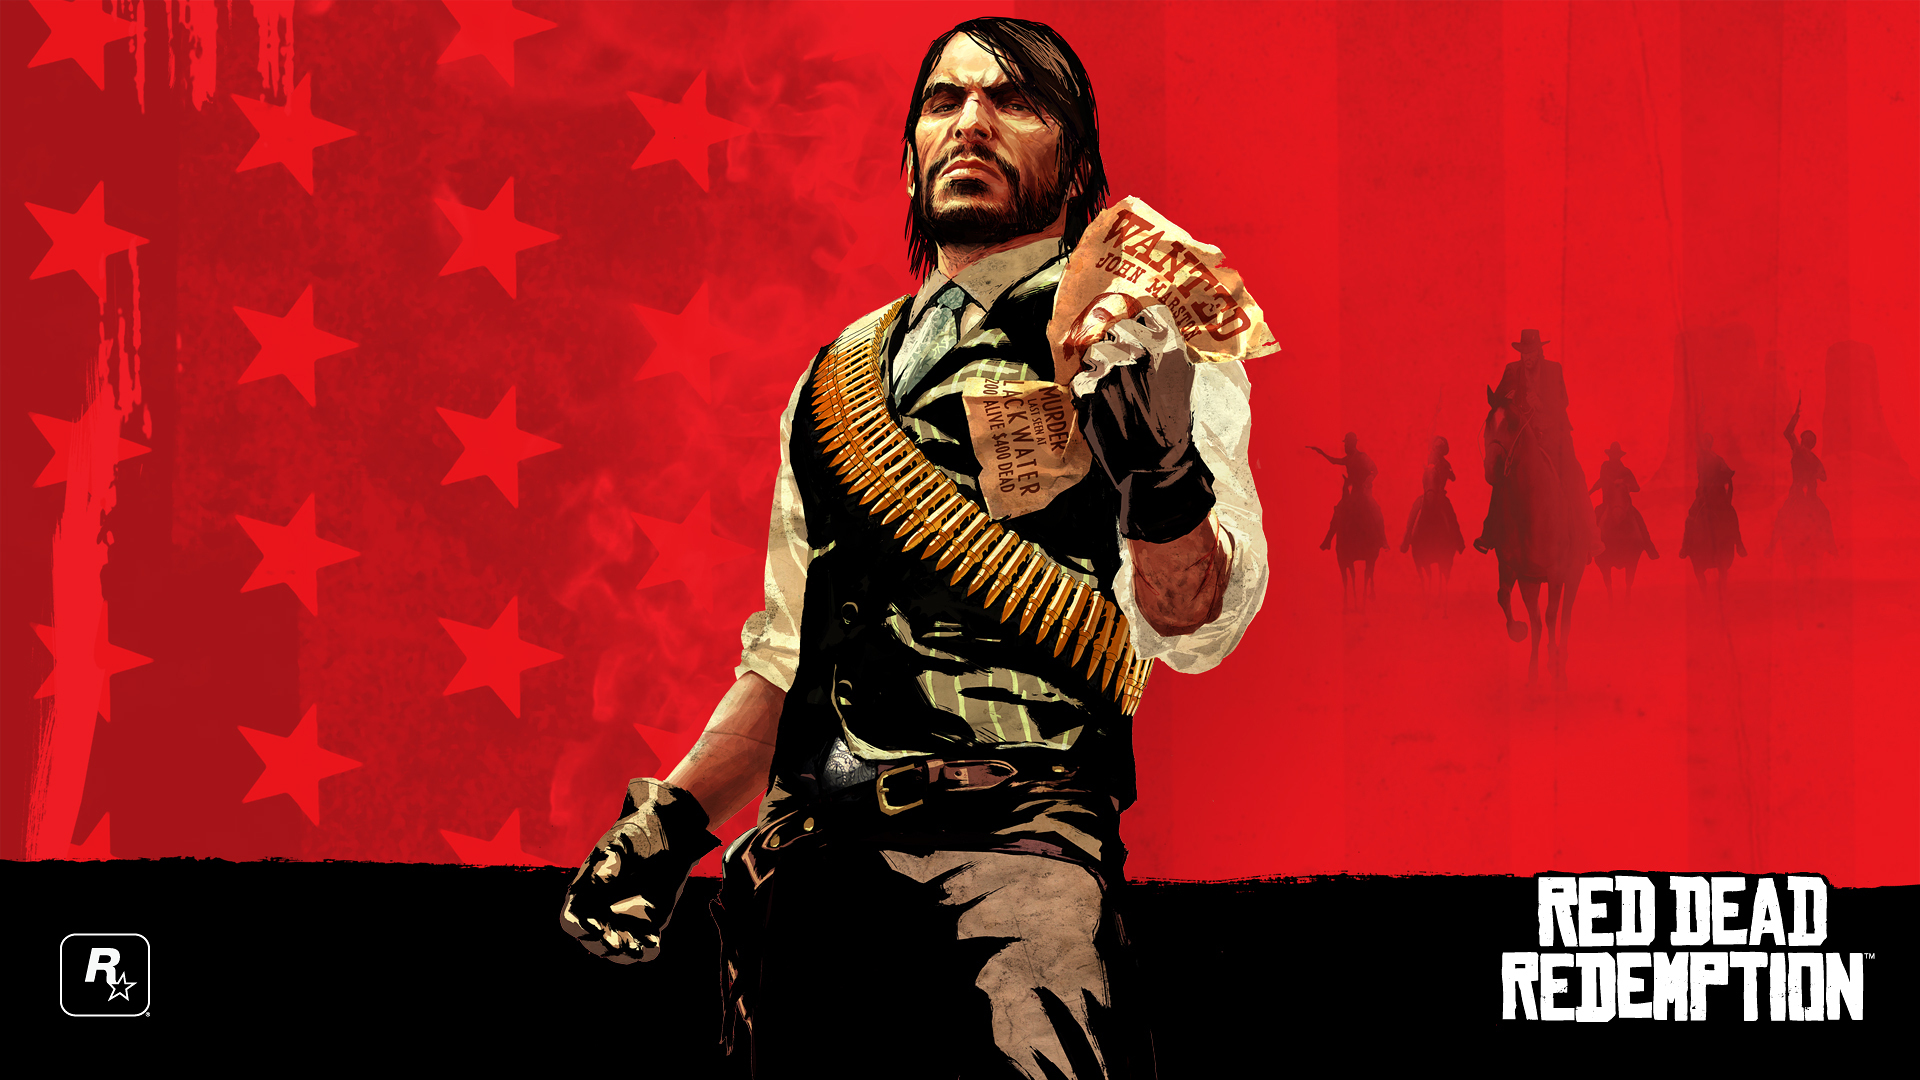 John Marston - Red Dead Redemption [2] wallpaper - Game wallpapers ...